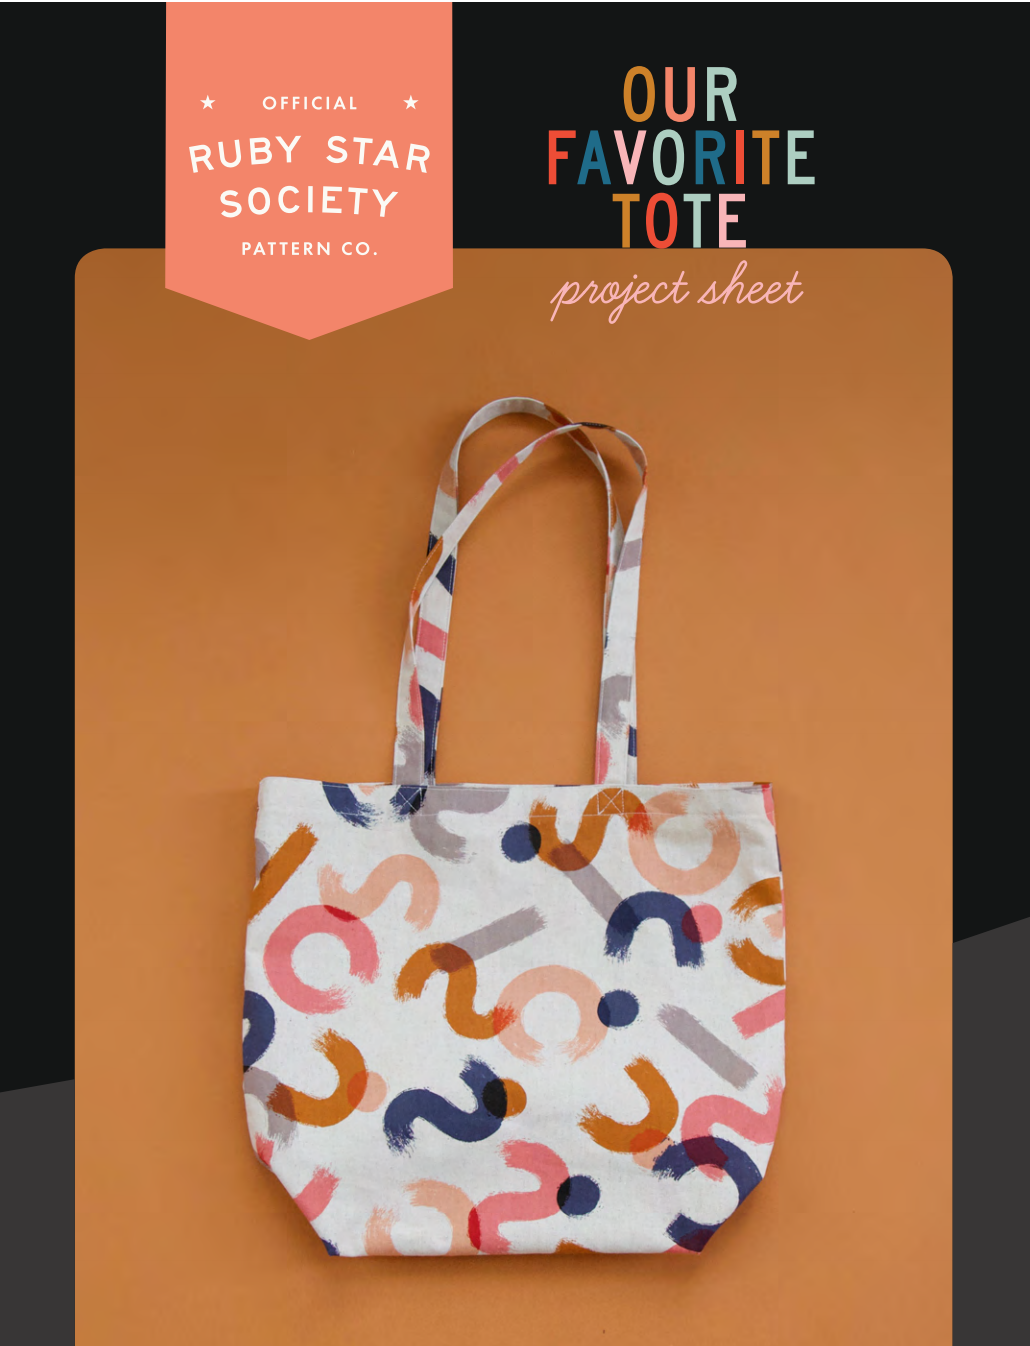 Our Favorite Tote - Ruby Star Society - Blue & Tan